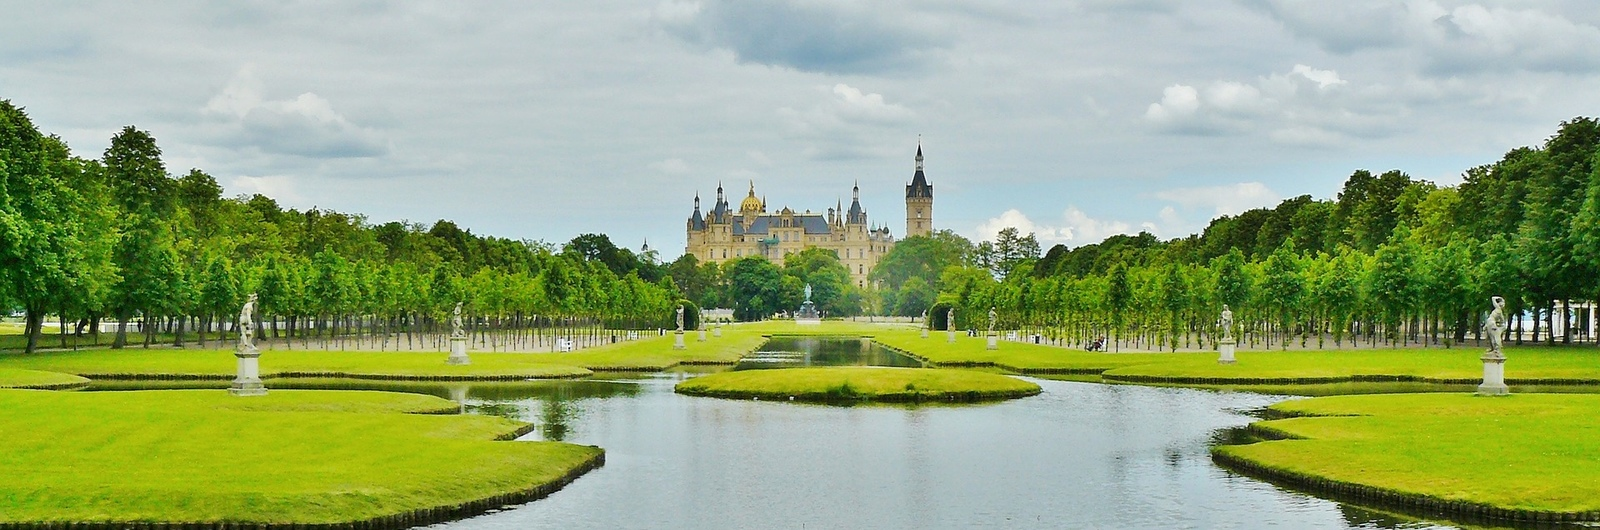 schwerin city header